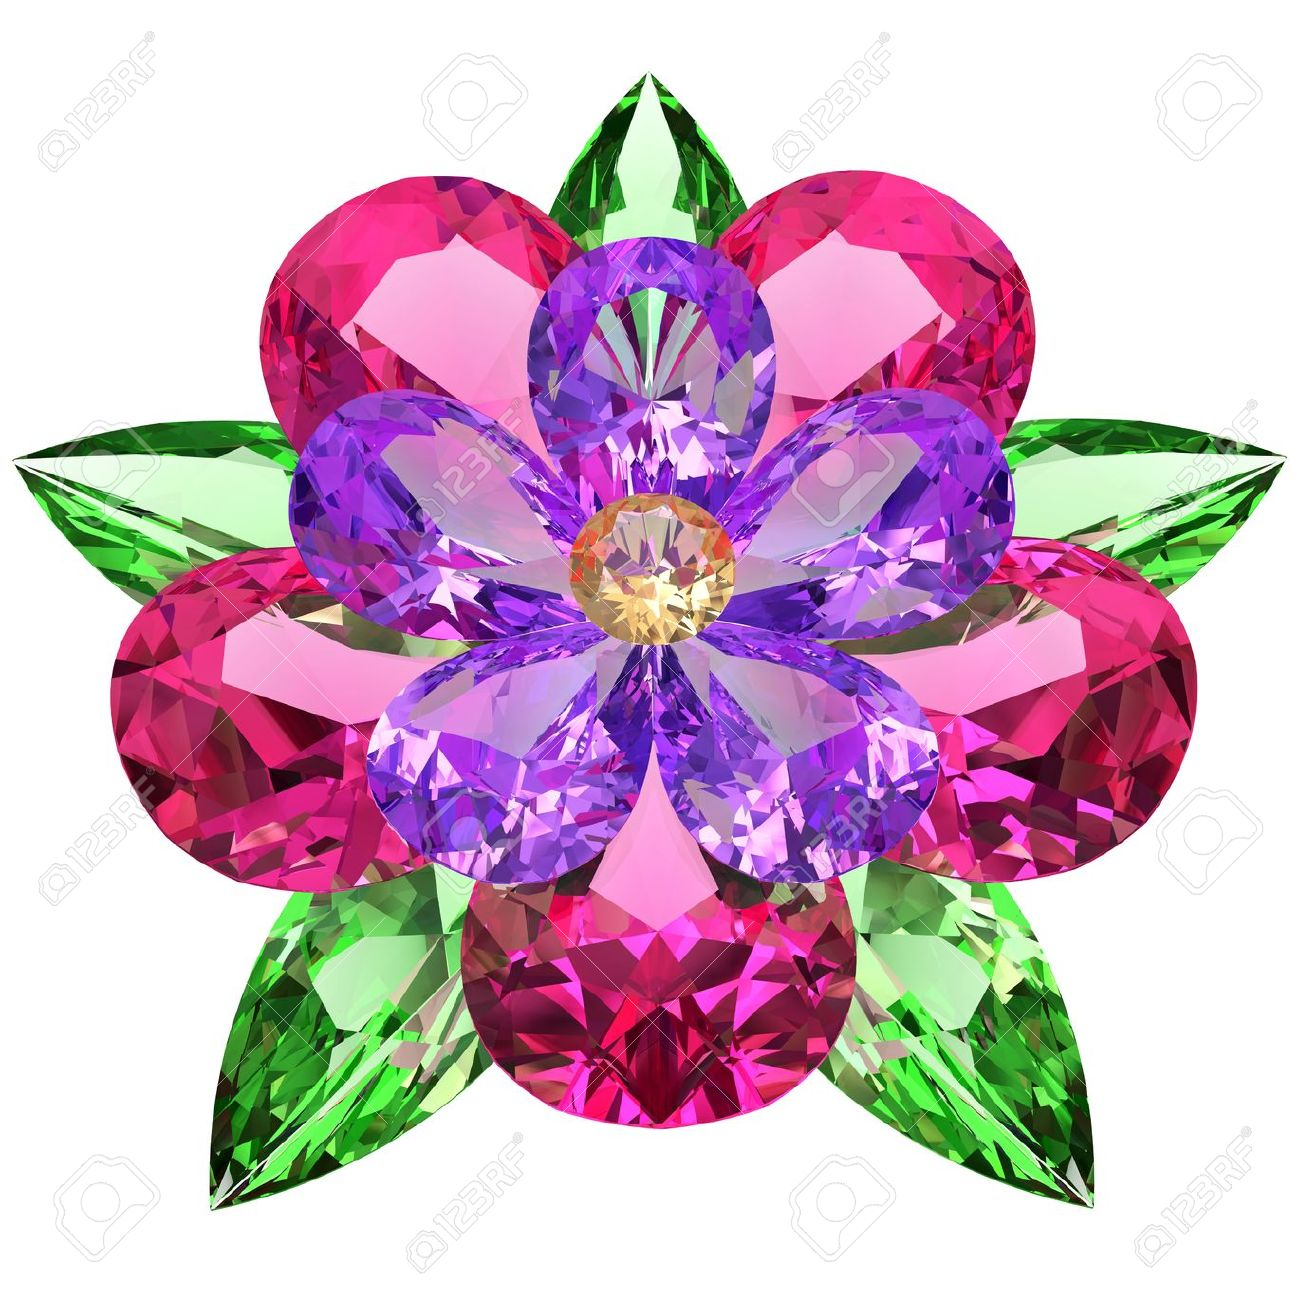 Flower composed of colored gemstones on white background High resolution 3D image - 14508428